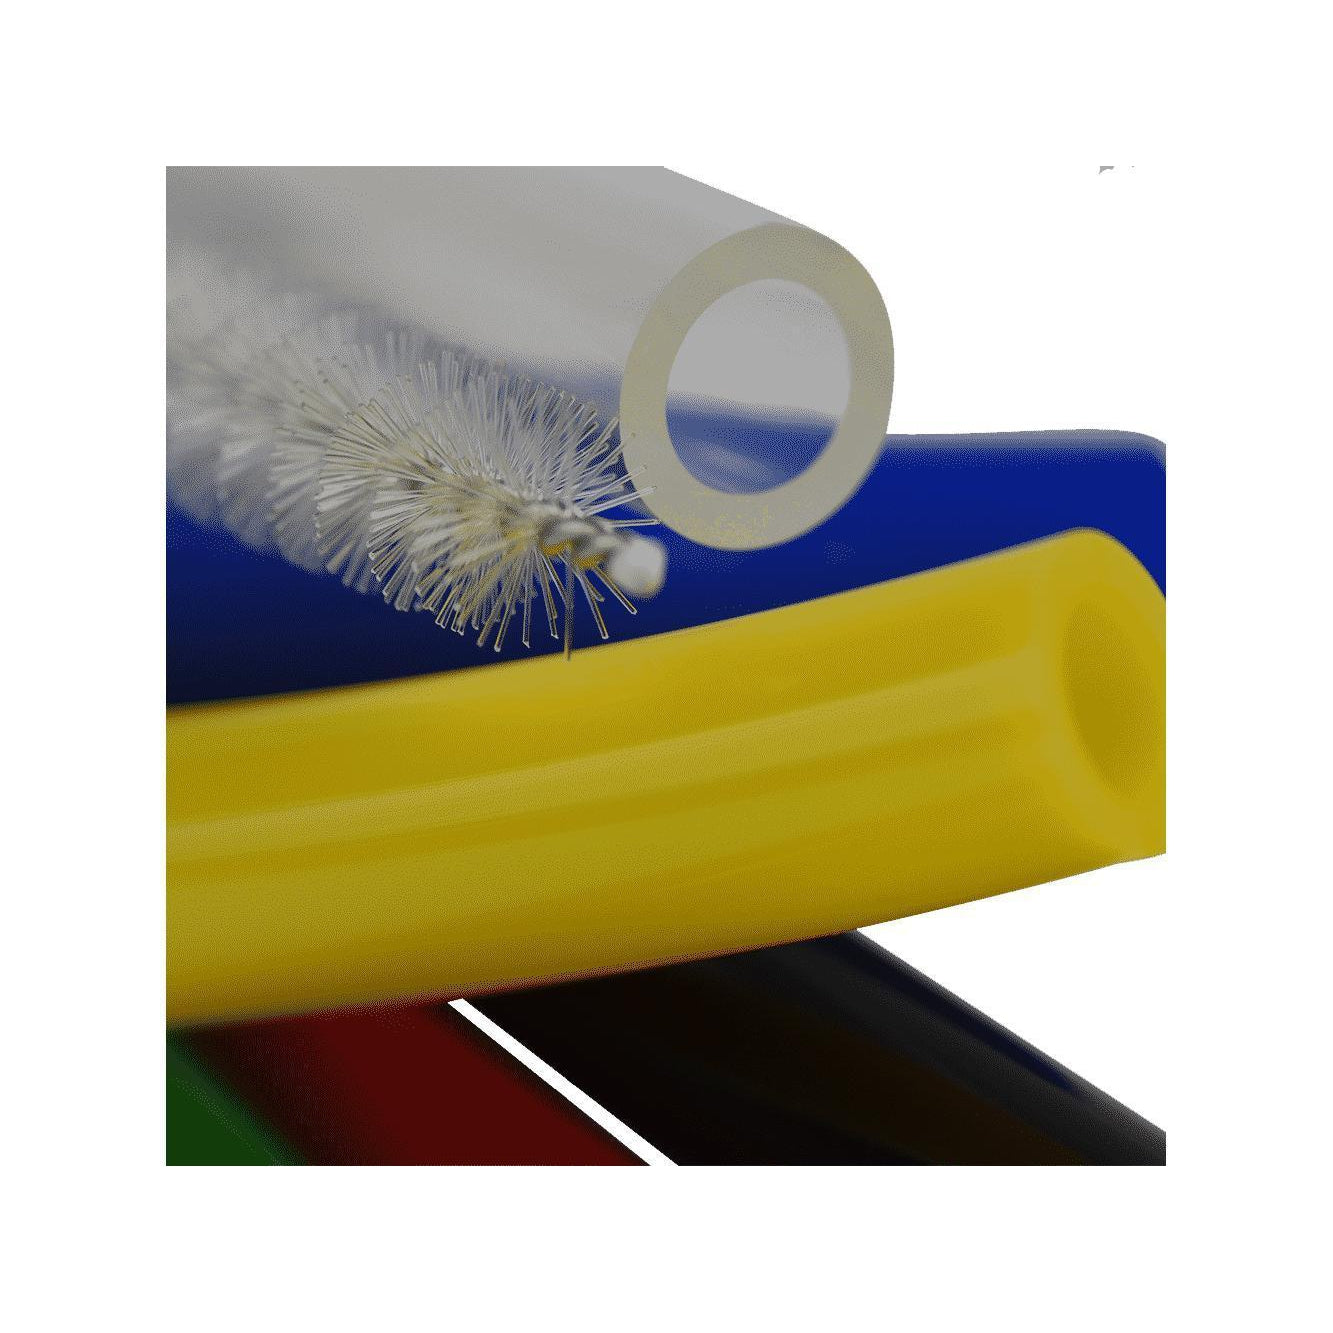 tubes brush cleaning kit-set of 2